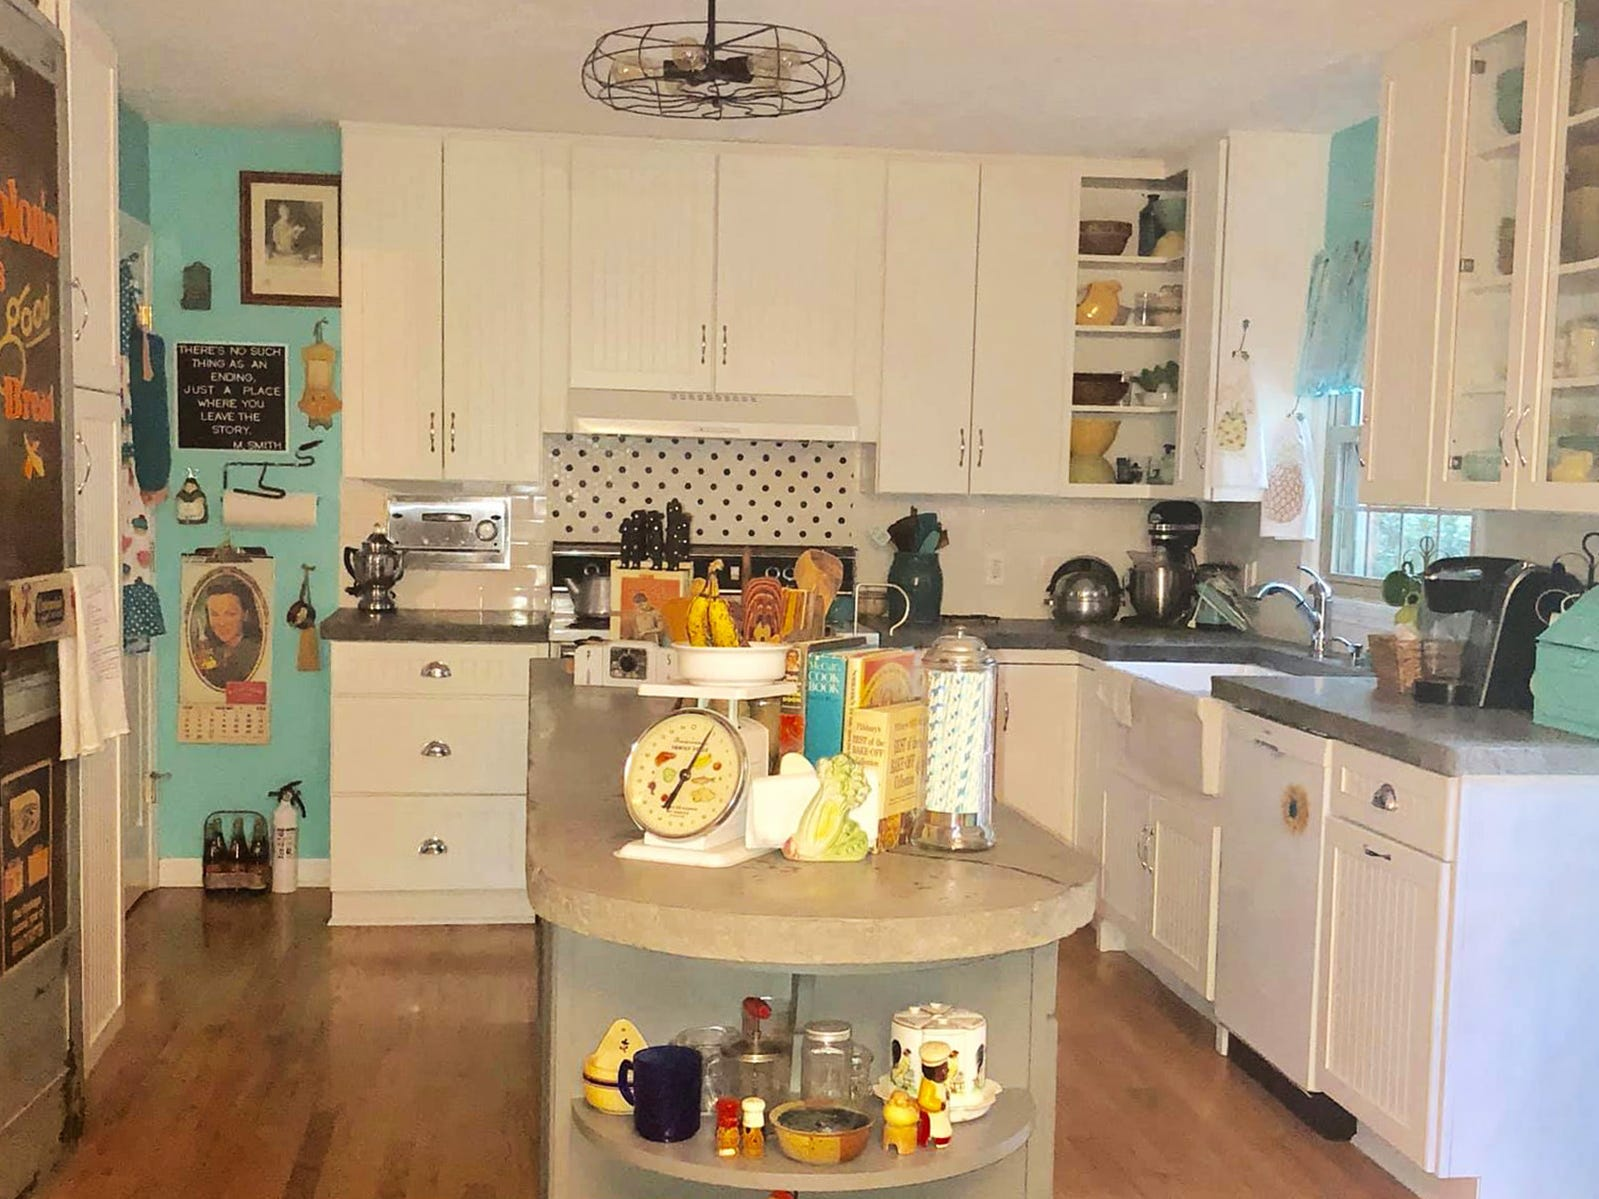 Kathleen Walter new retro 1950s kitchen allows friends and guest to step back in time.